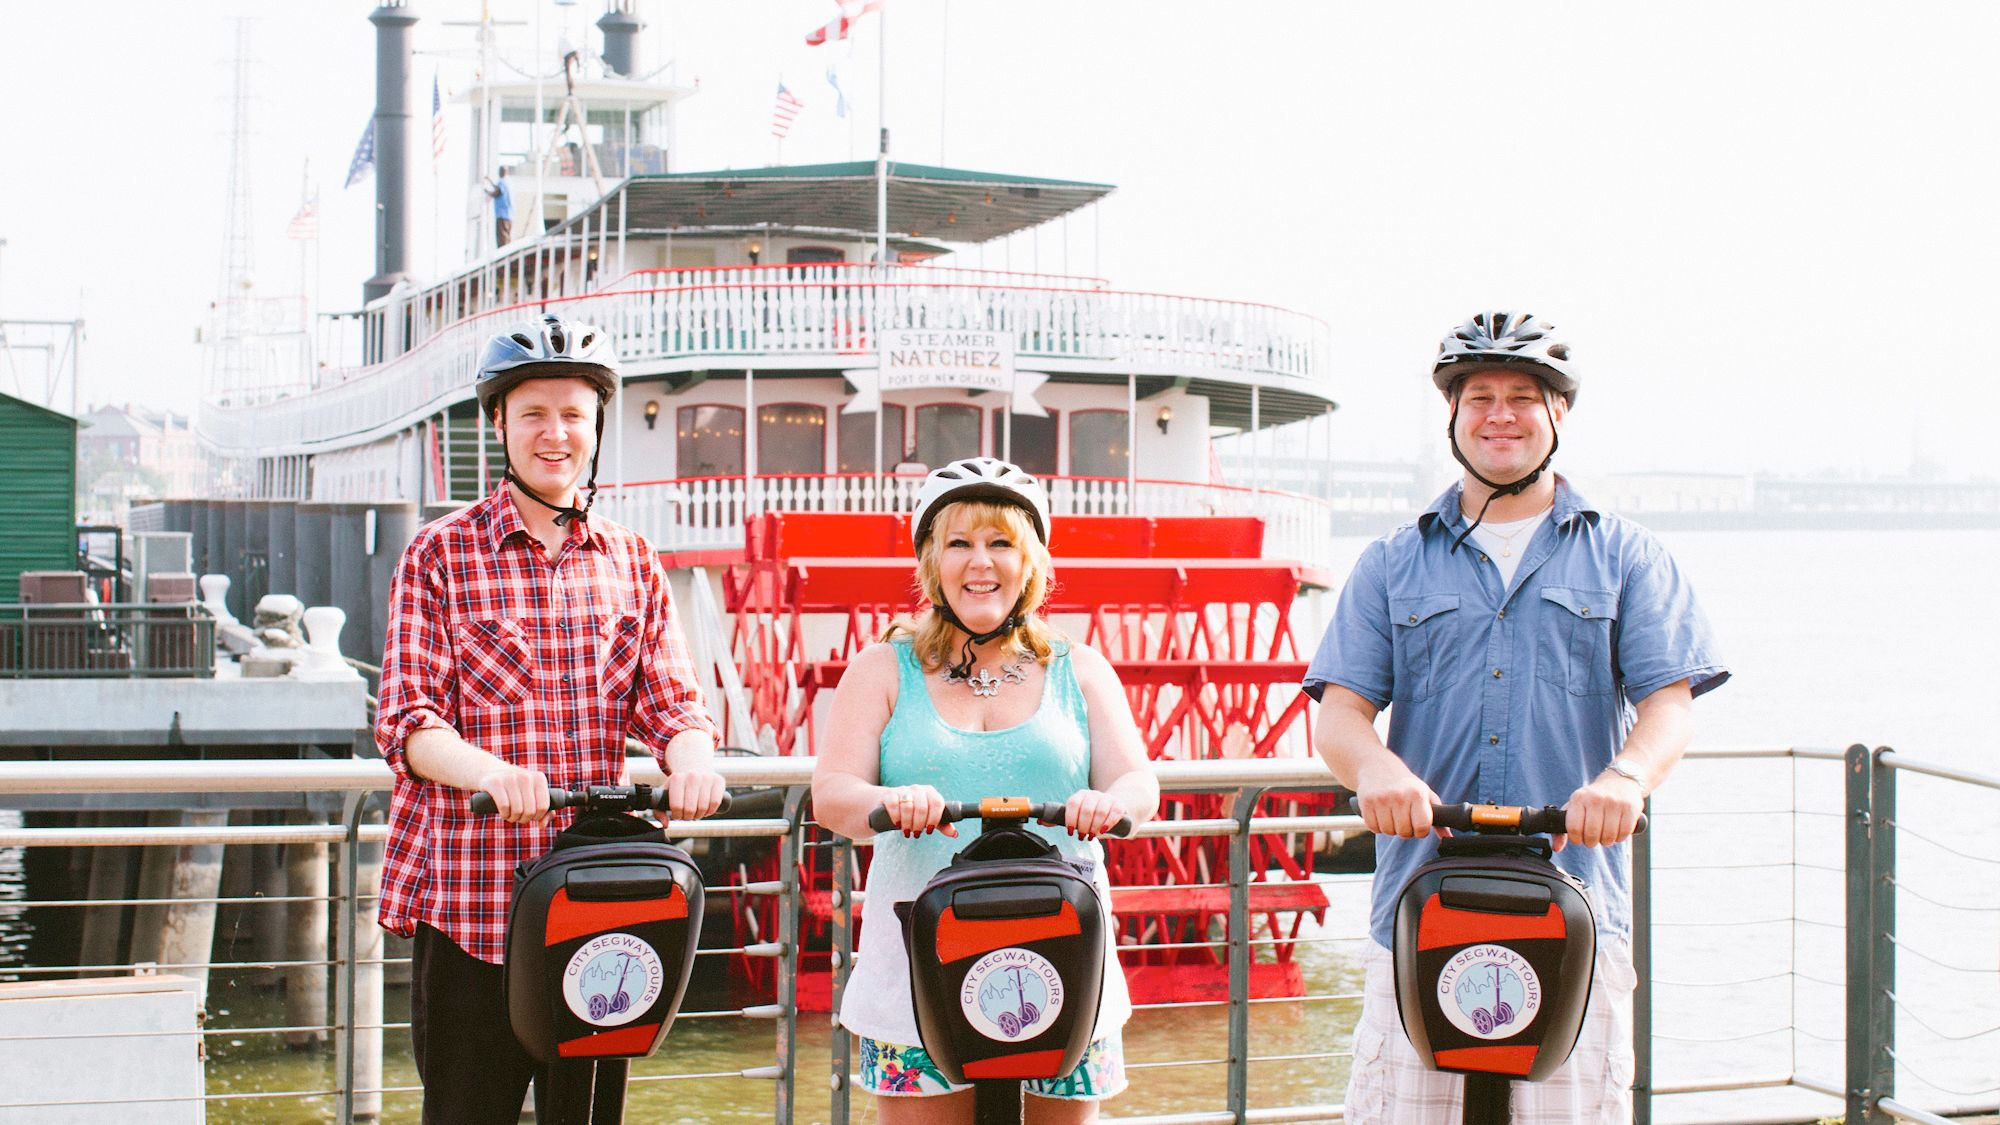 Three guests on a segway tour of New Orleans